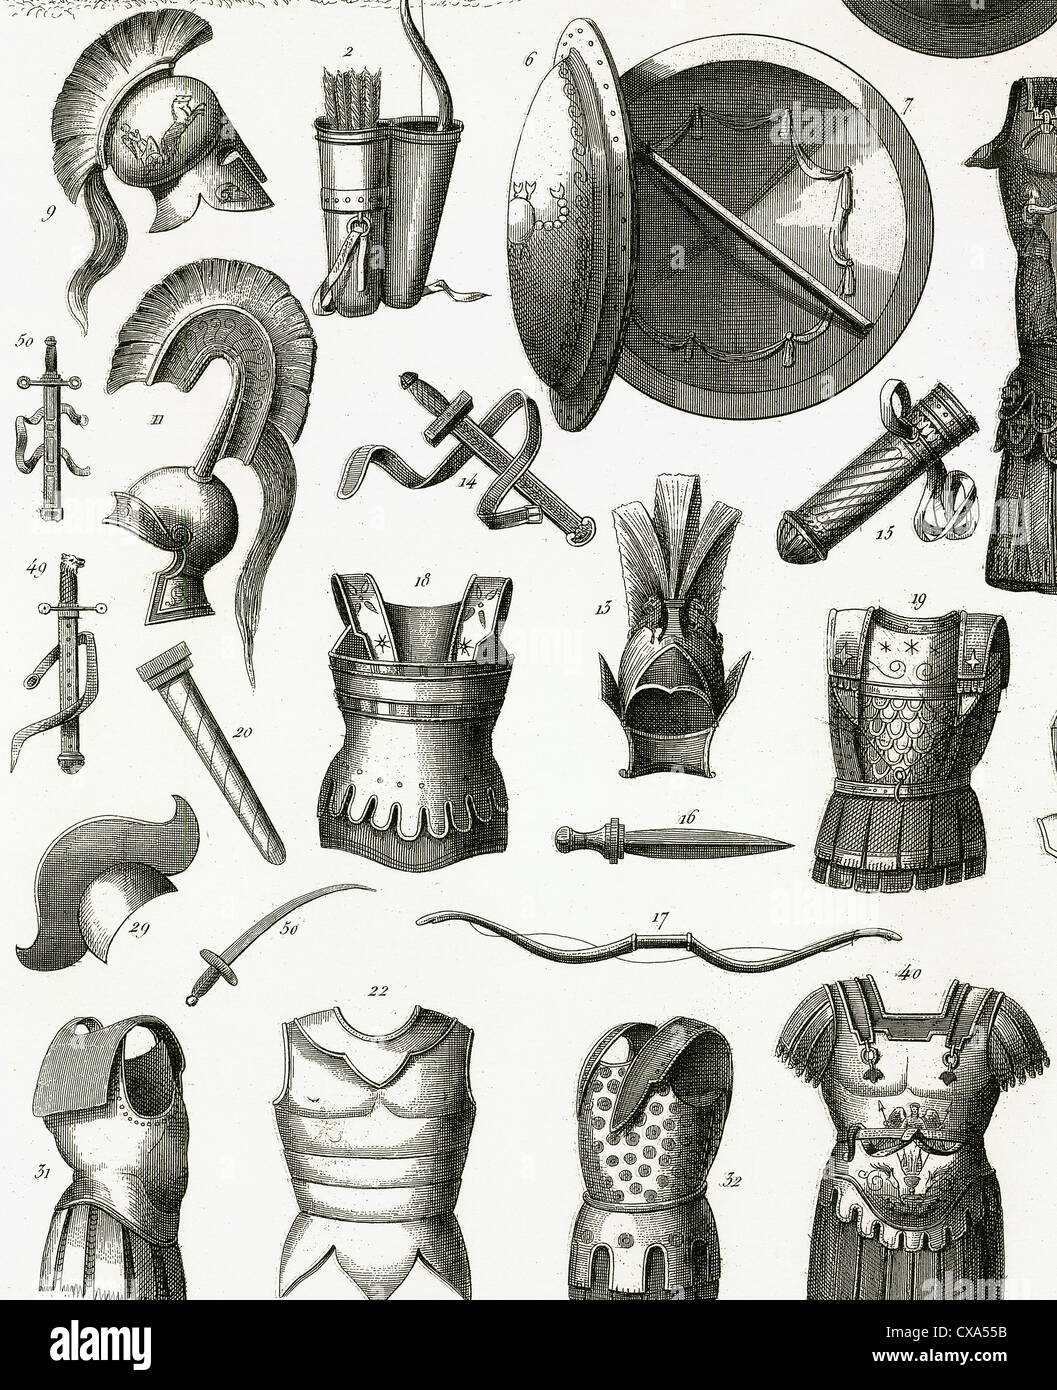 Roman army. Armors and weaponry. Engraving. 19th century. - Stock Image